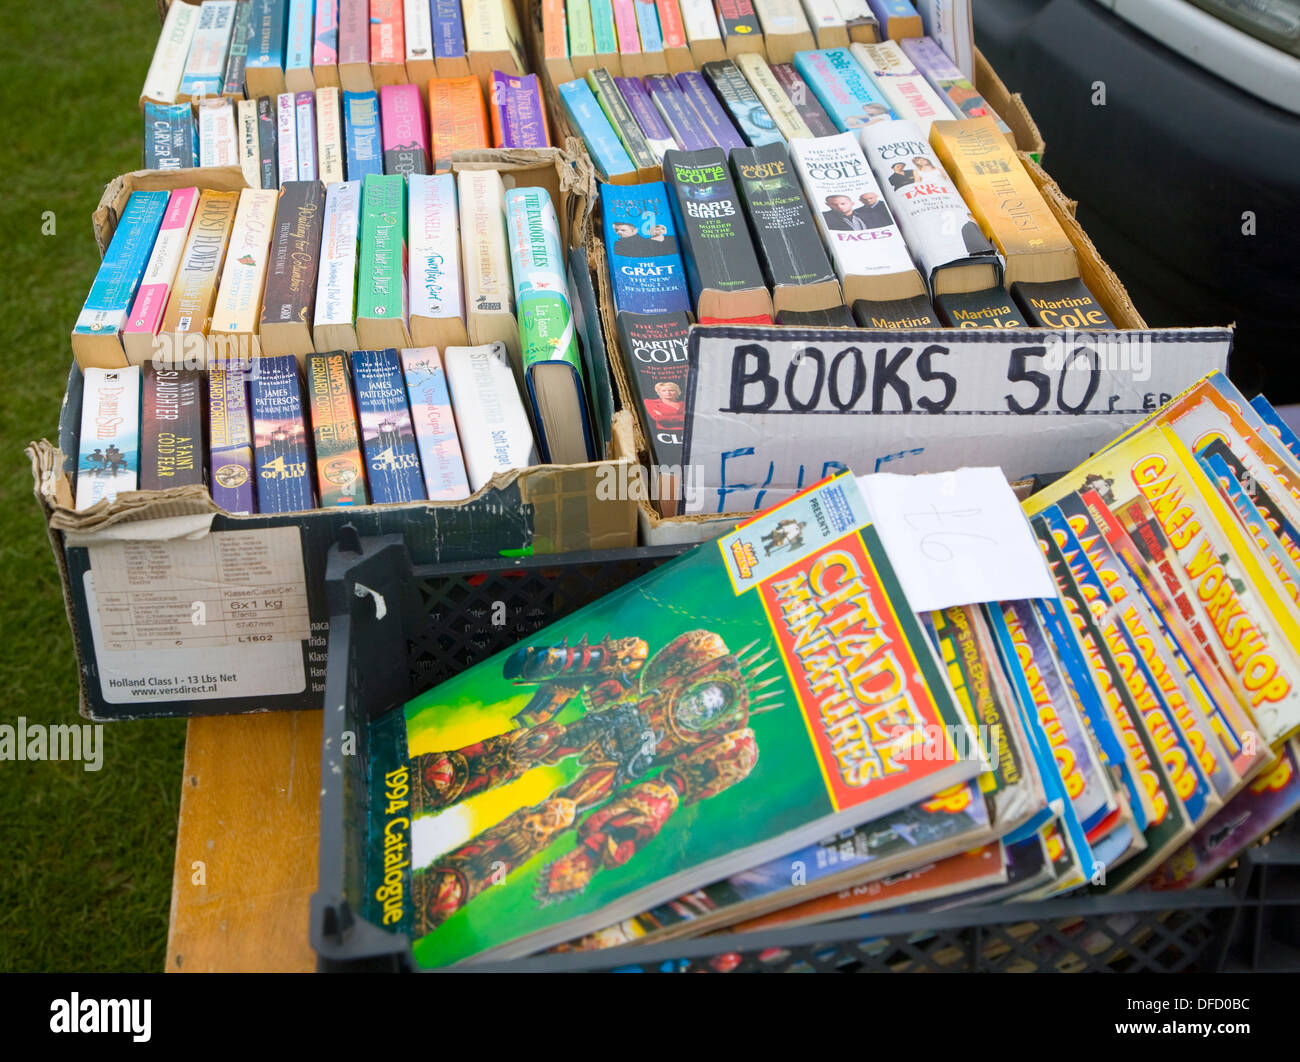 Second hand paperback books on sale car boot sale UK - Stock Image